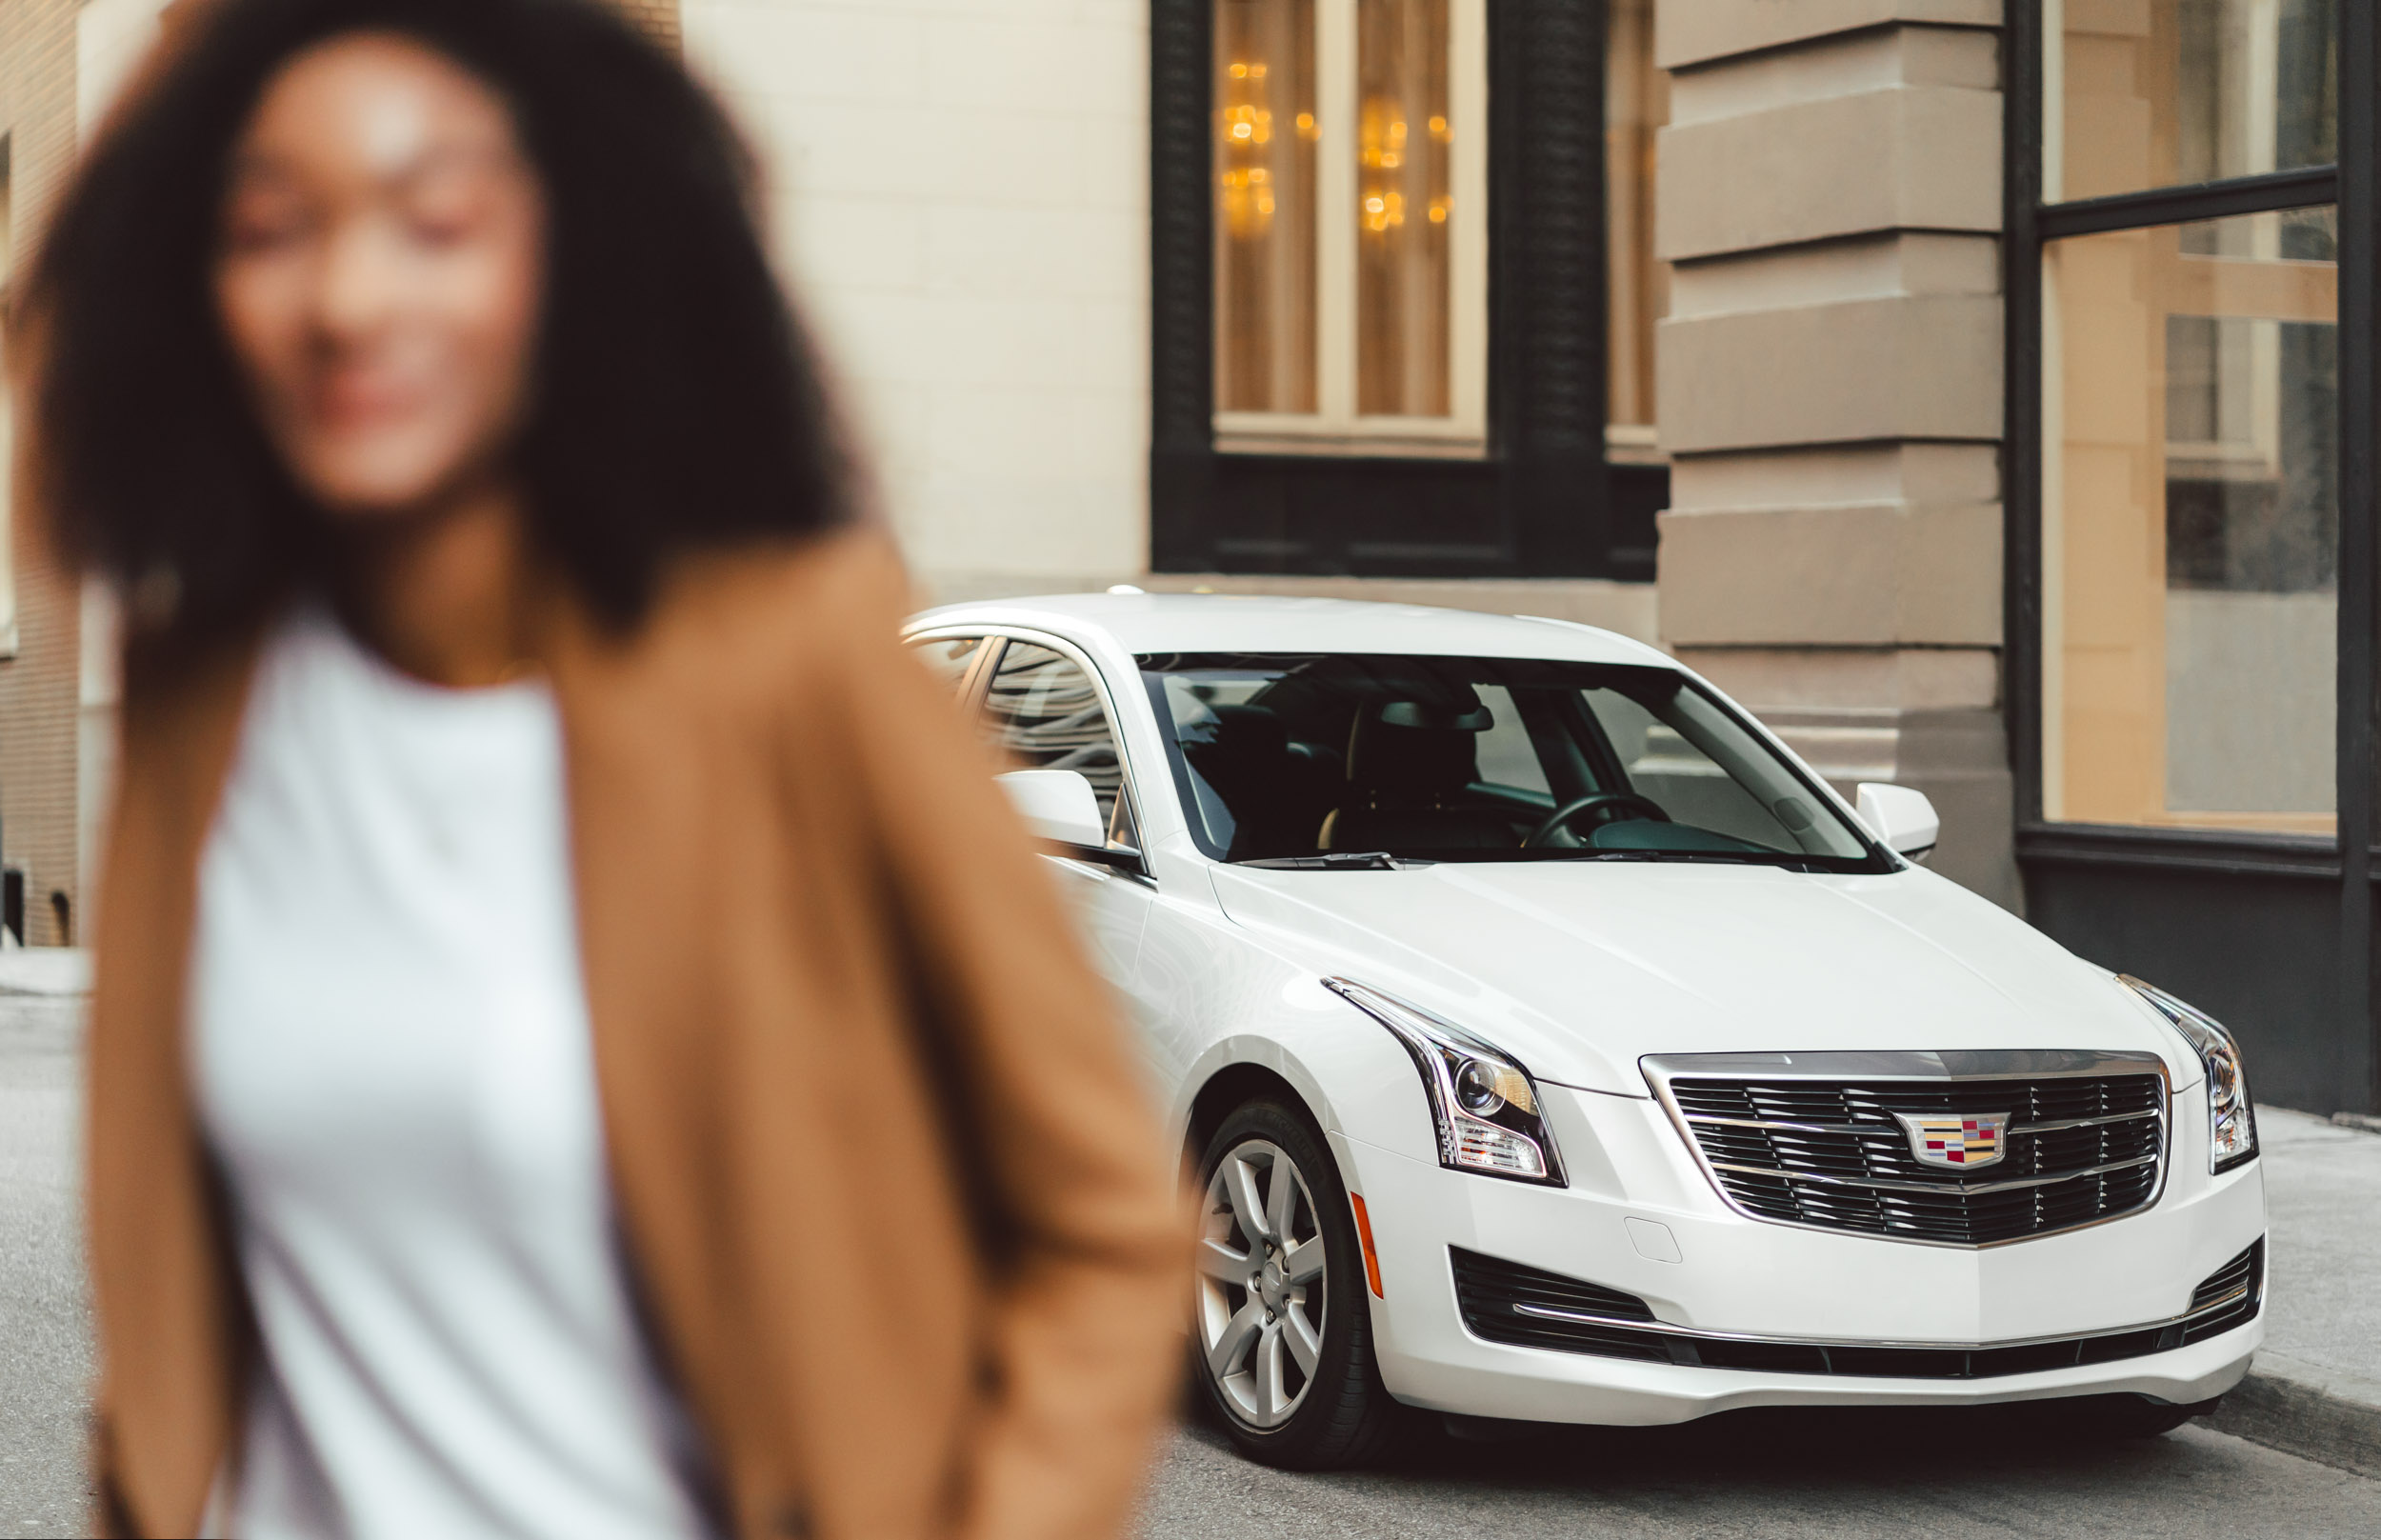 White Cadillac ATS parked in an alley with a female model in the foreground